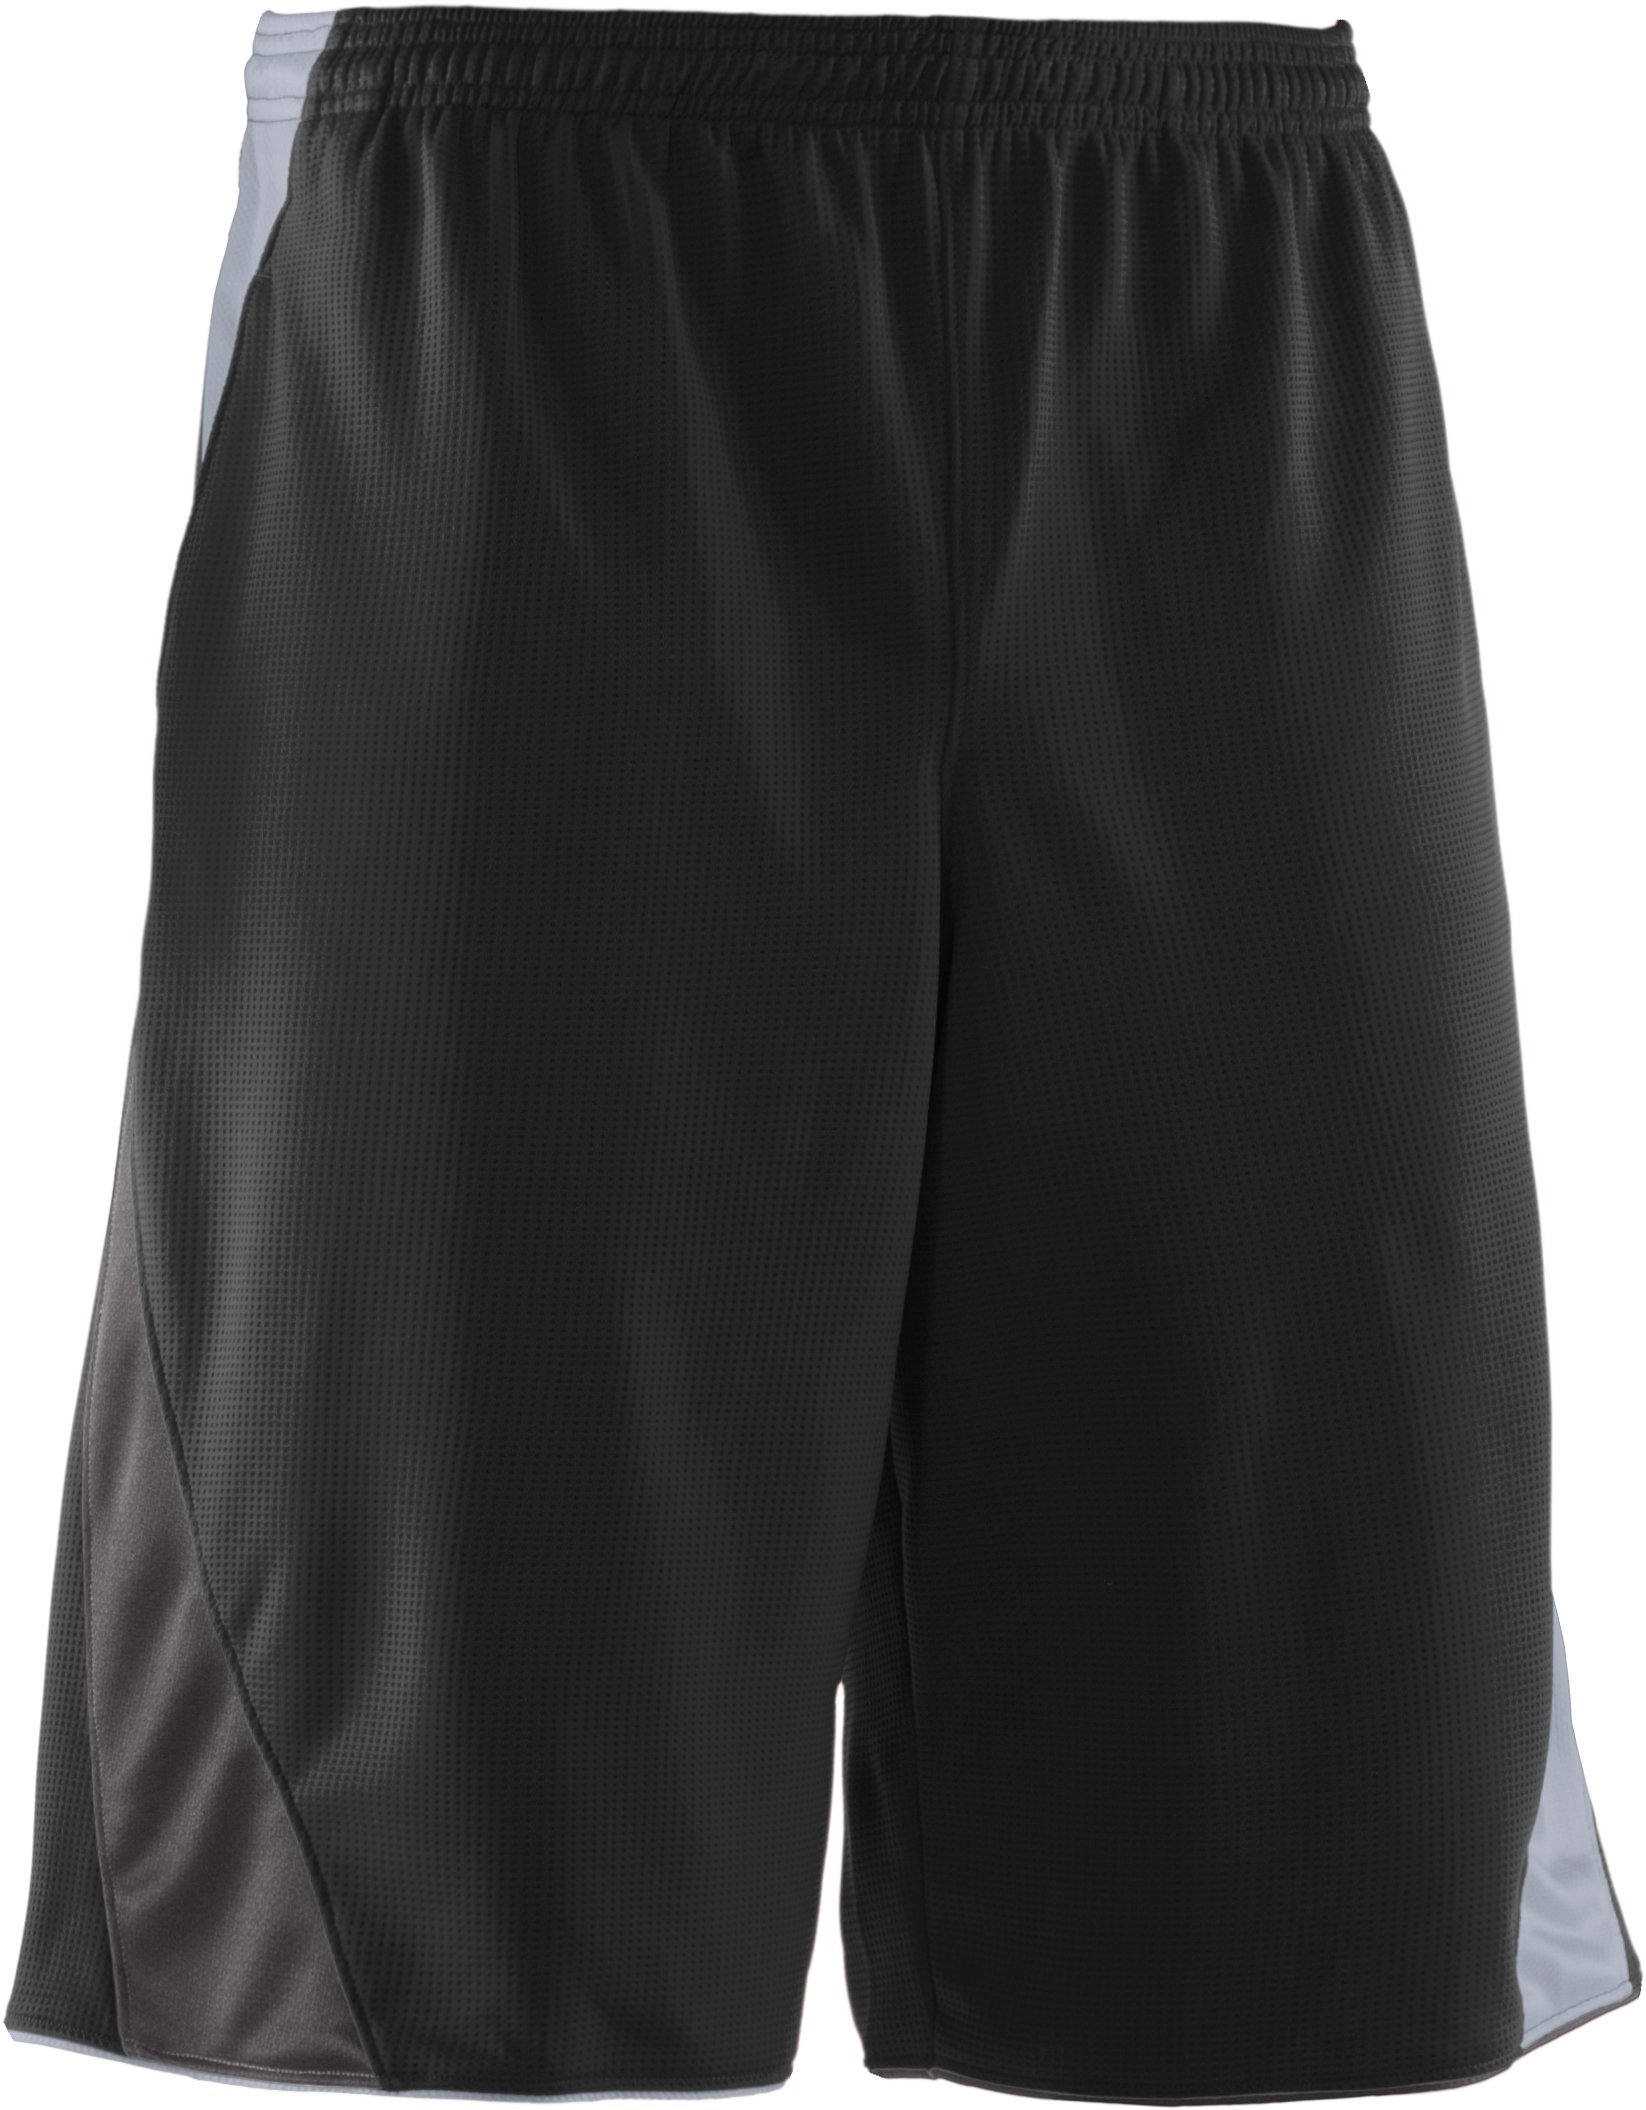 "Men's UA Bread Winner 12"" Basketball Shorts, Black"